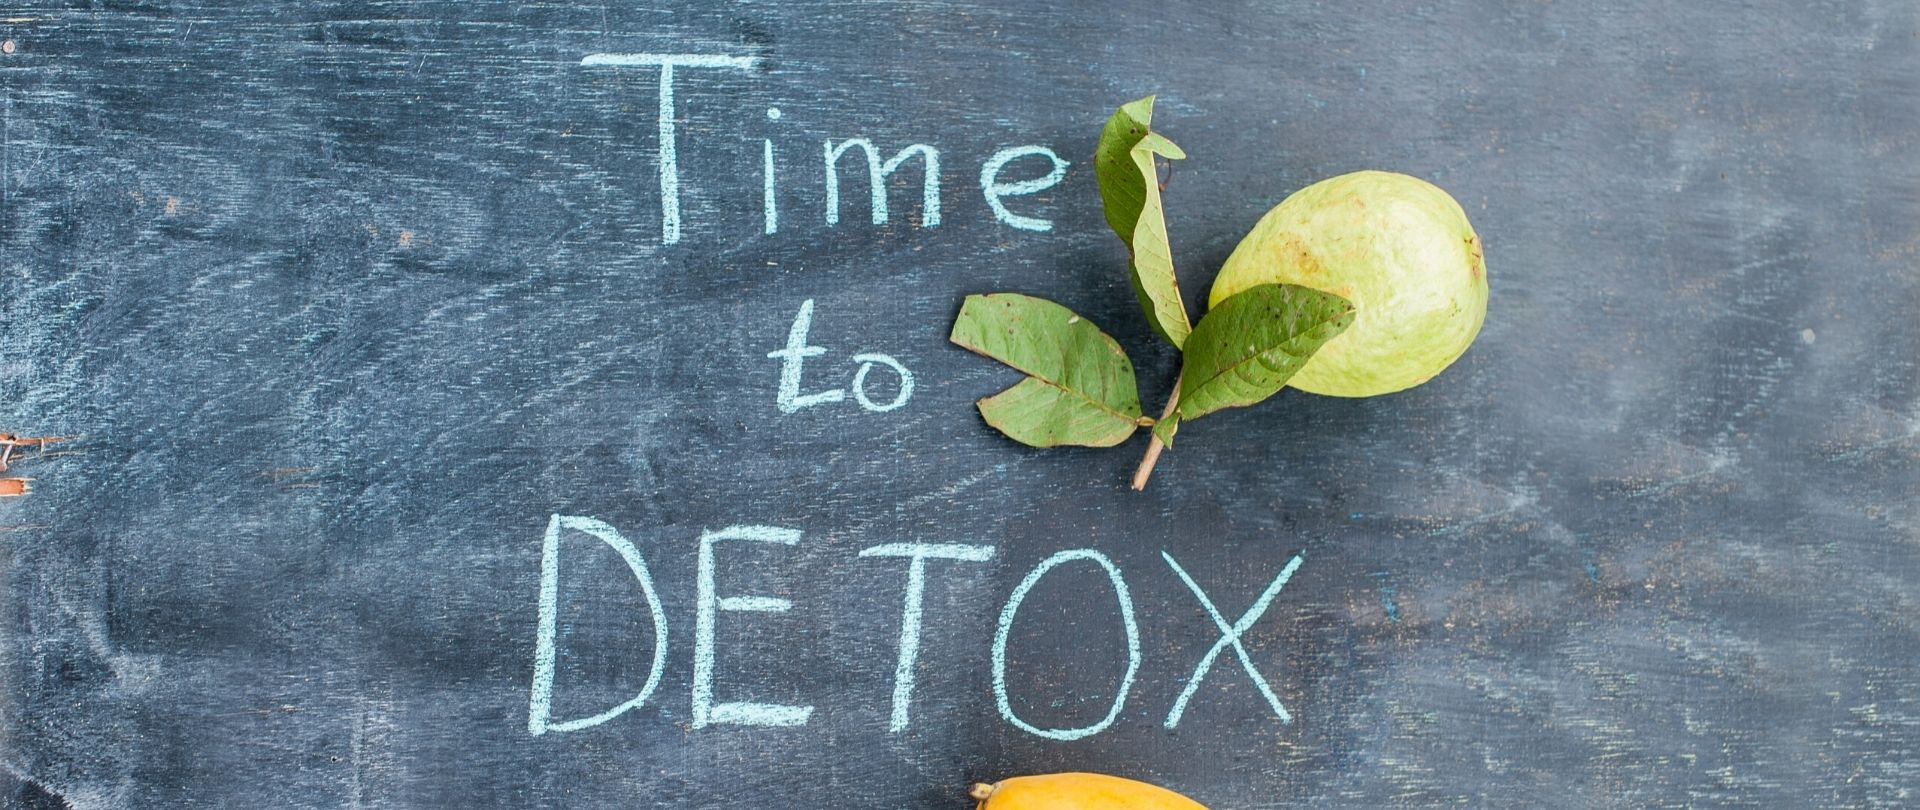 Time to Detox 1920x810 1 - How Kaiut Yoga Supports Daily Detox